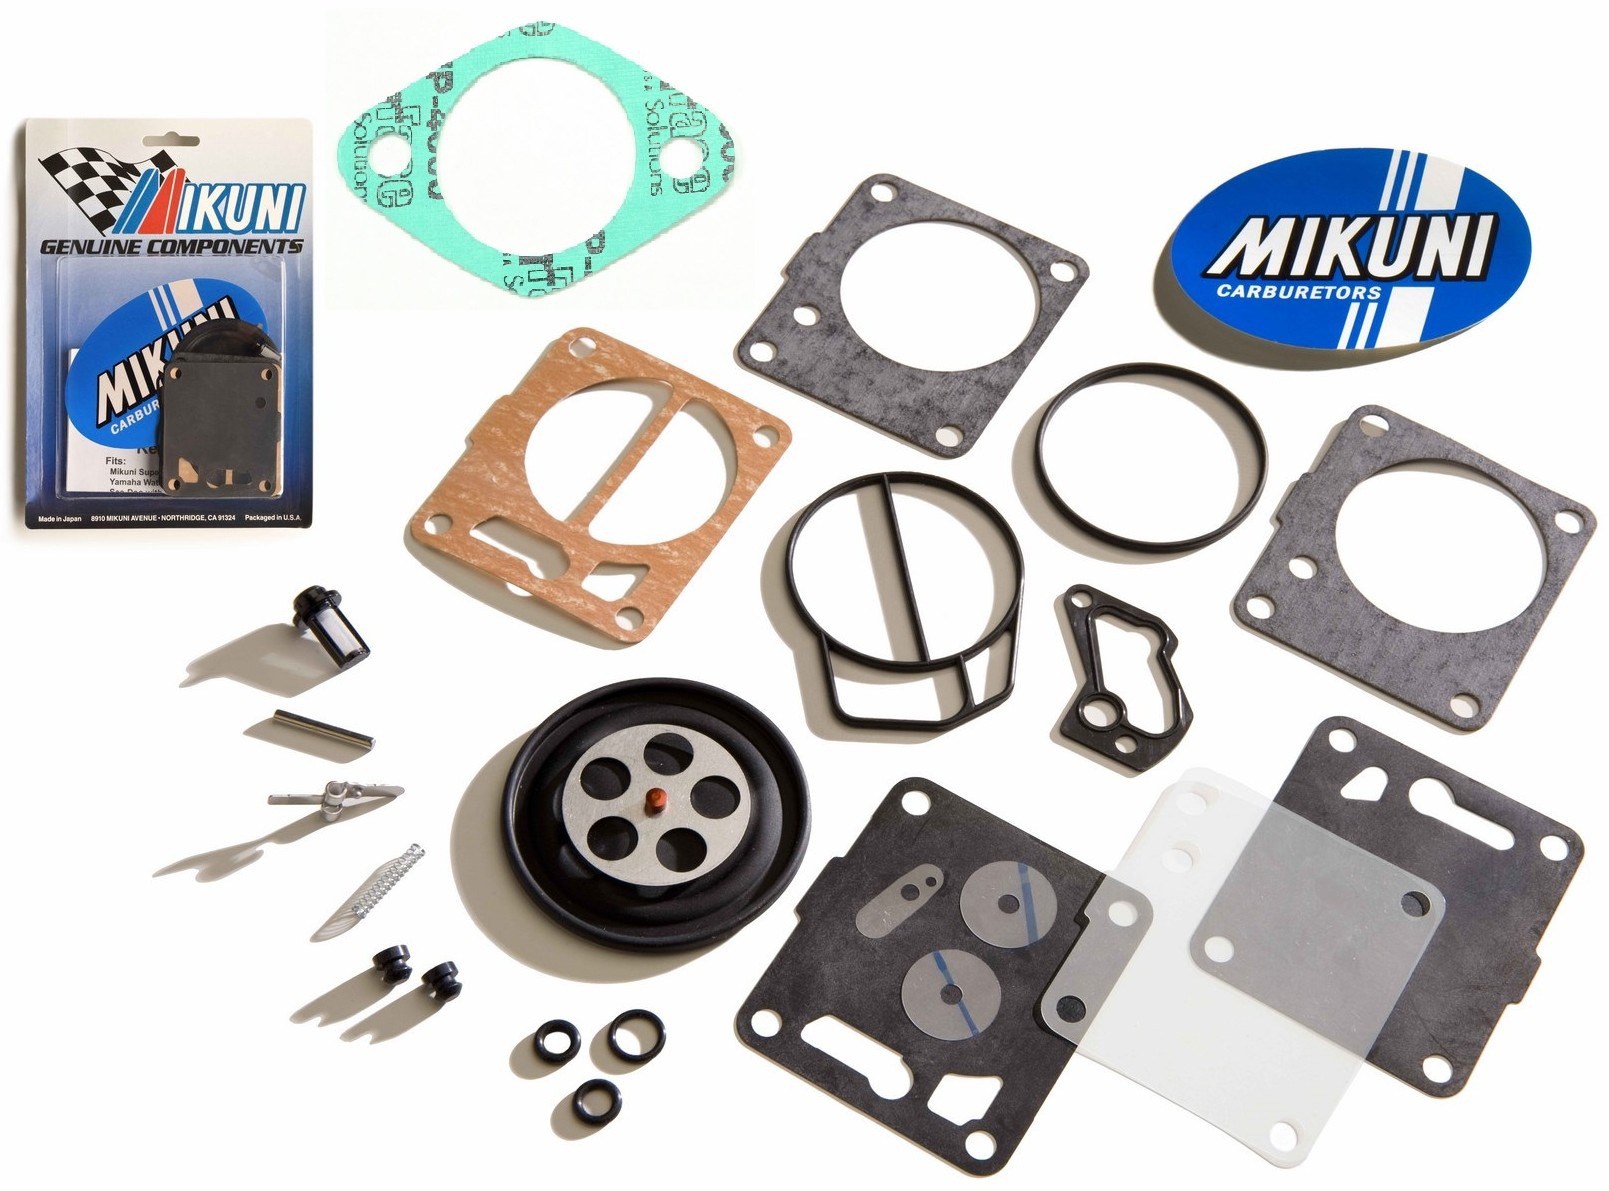 Personal Watercraft Parts Genuine Mikuni Carb Carburetor Rebuild Kit & Base Gasket Seadoo GS GTS GTI Le SP Other Parts